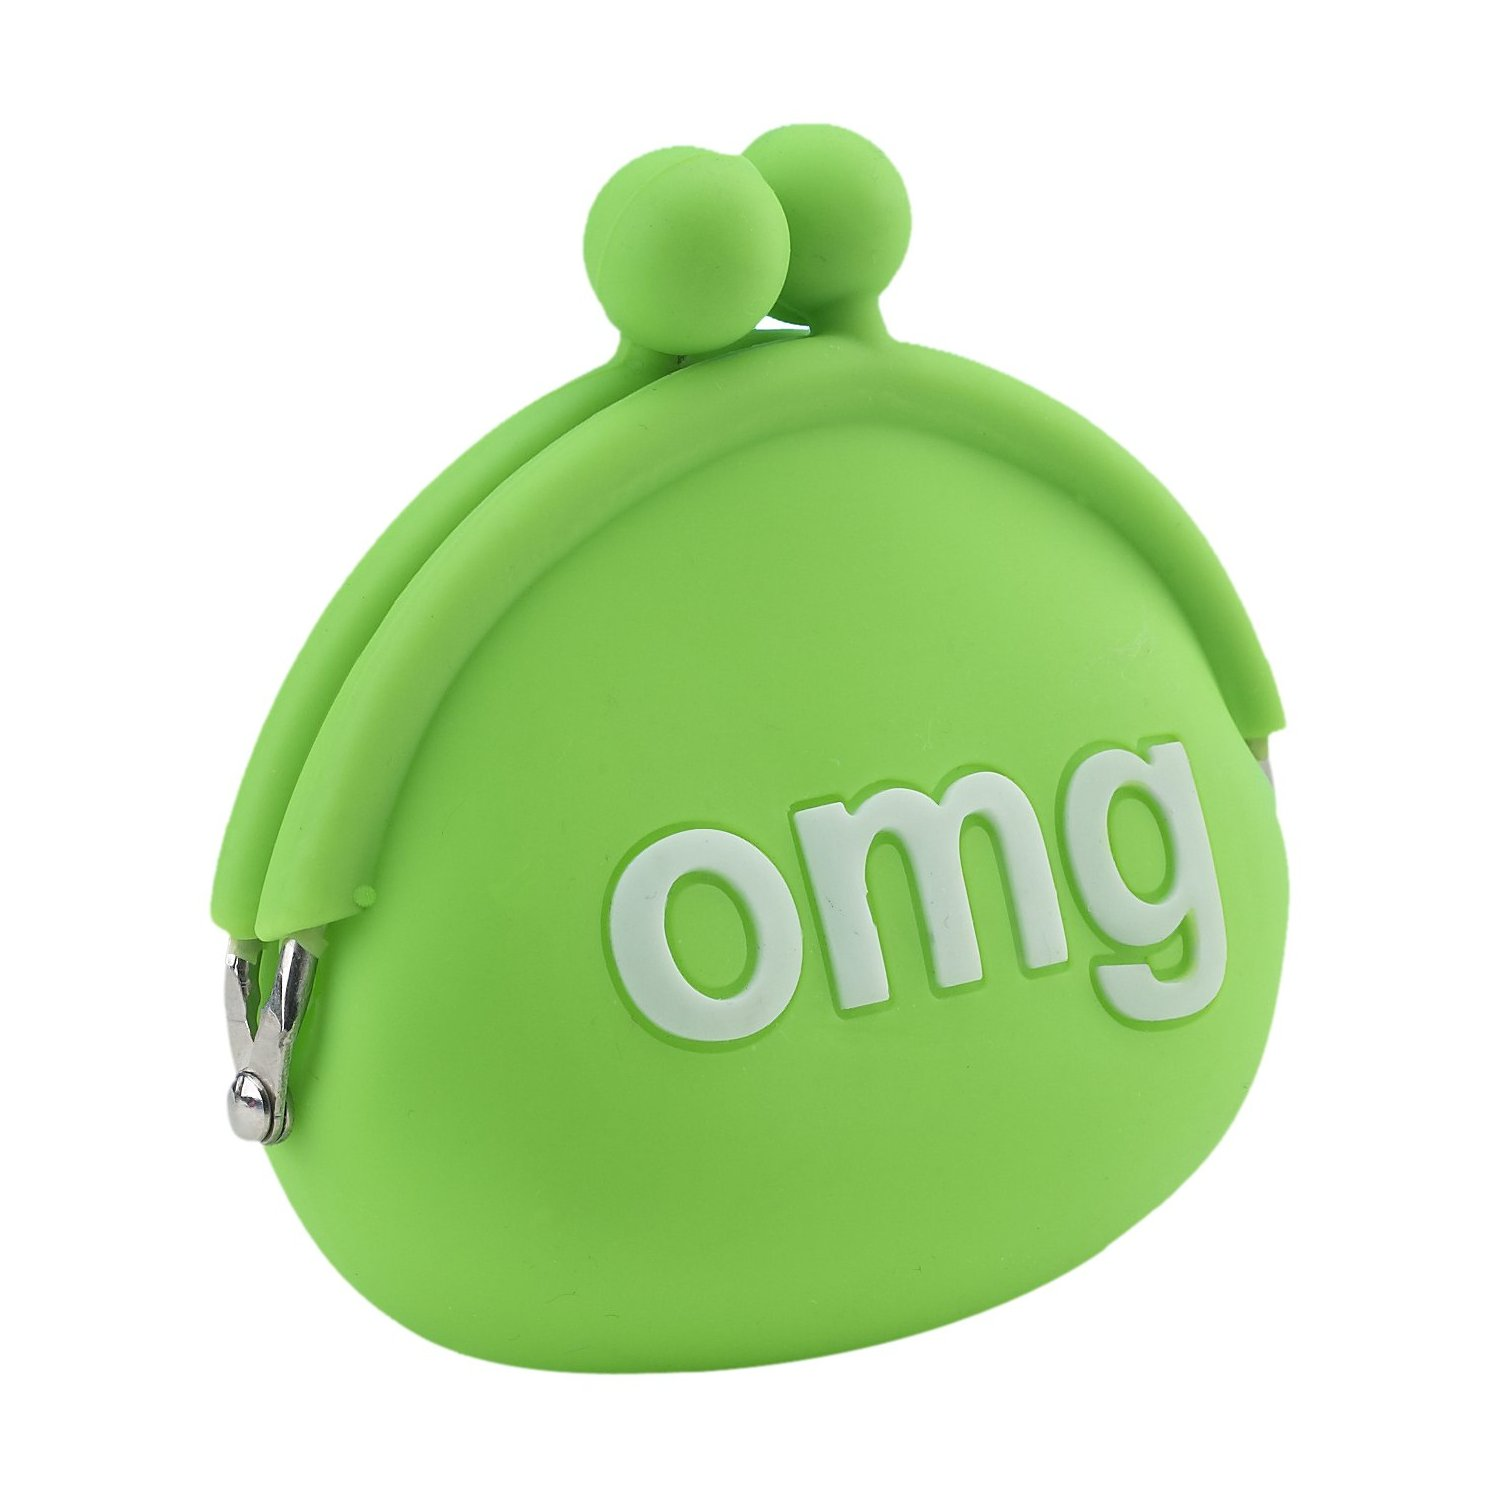 NEW OMG CLUTCH COIN PURSE TEXT SPEAK SMS OH MY GOD SILICONE WALLET GREEN KEYRING